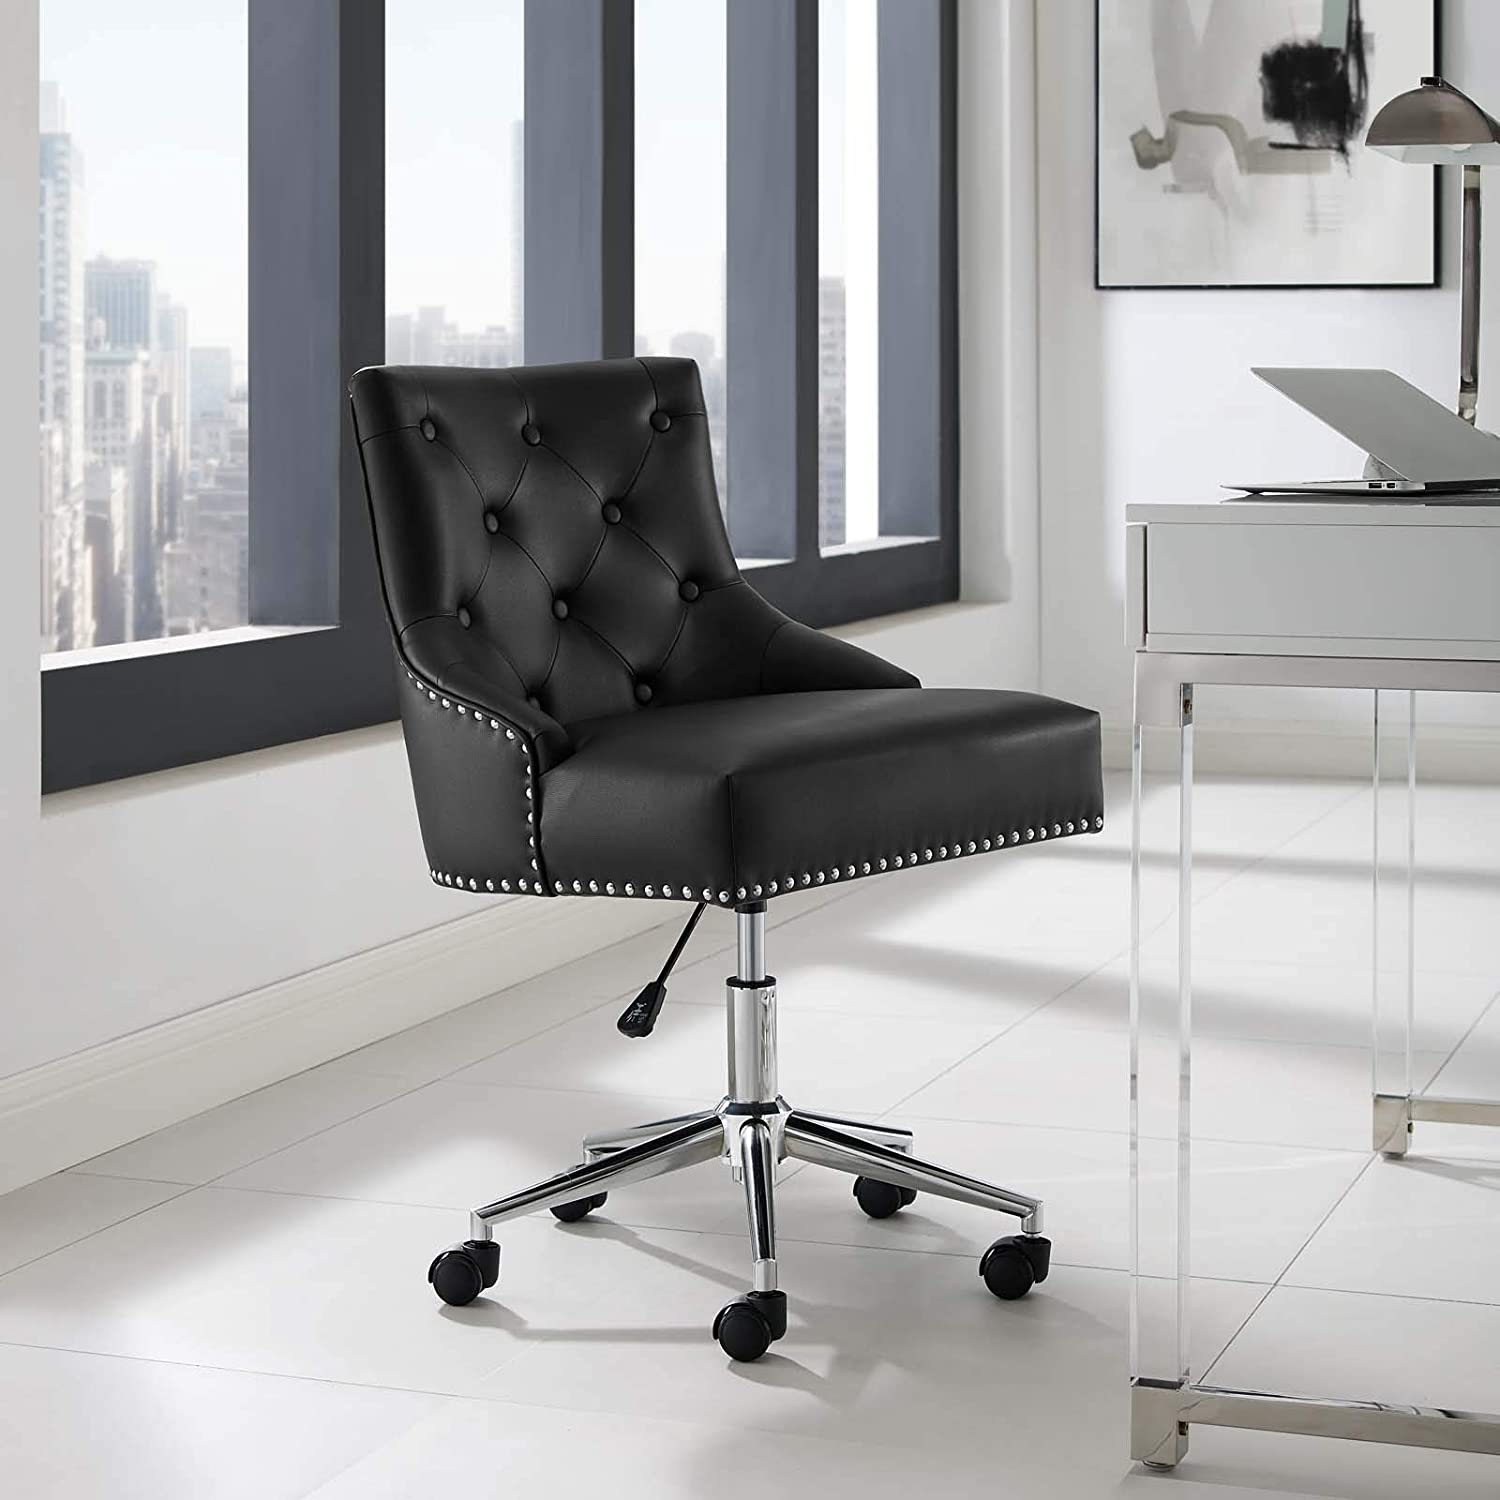 Modway Regent Tufted Button Faux Leather Swivel Office Chair with Nailhead Trim in Black